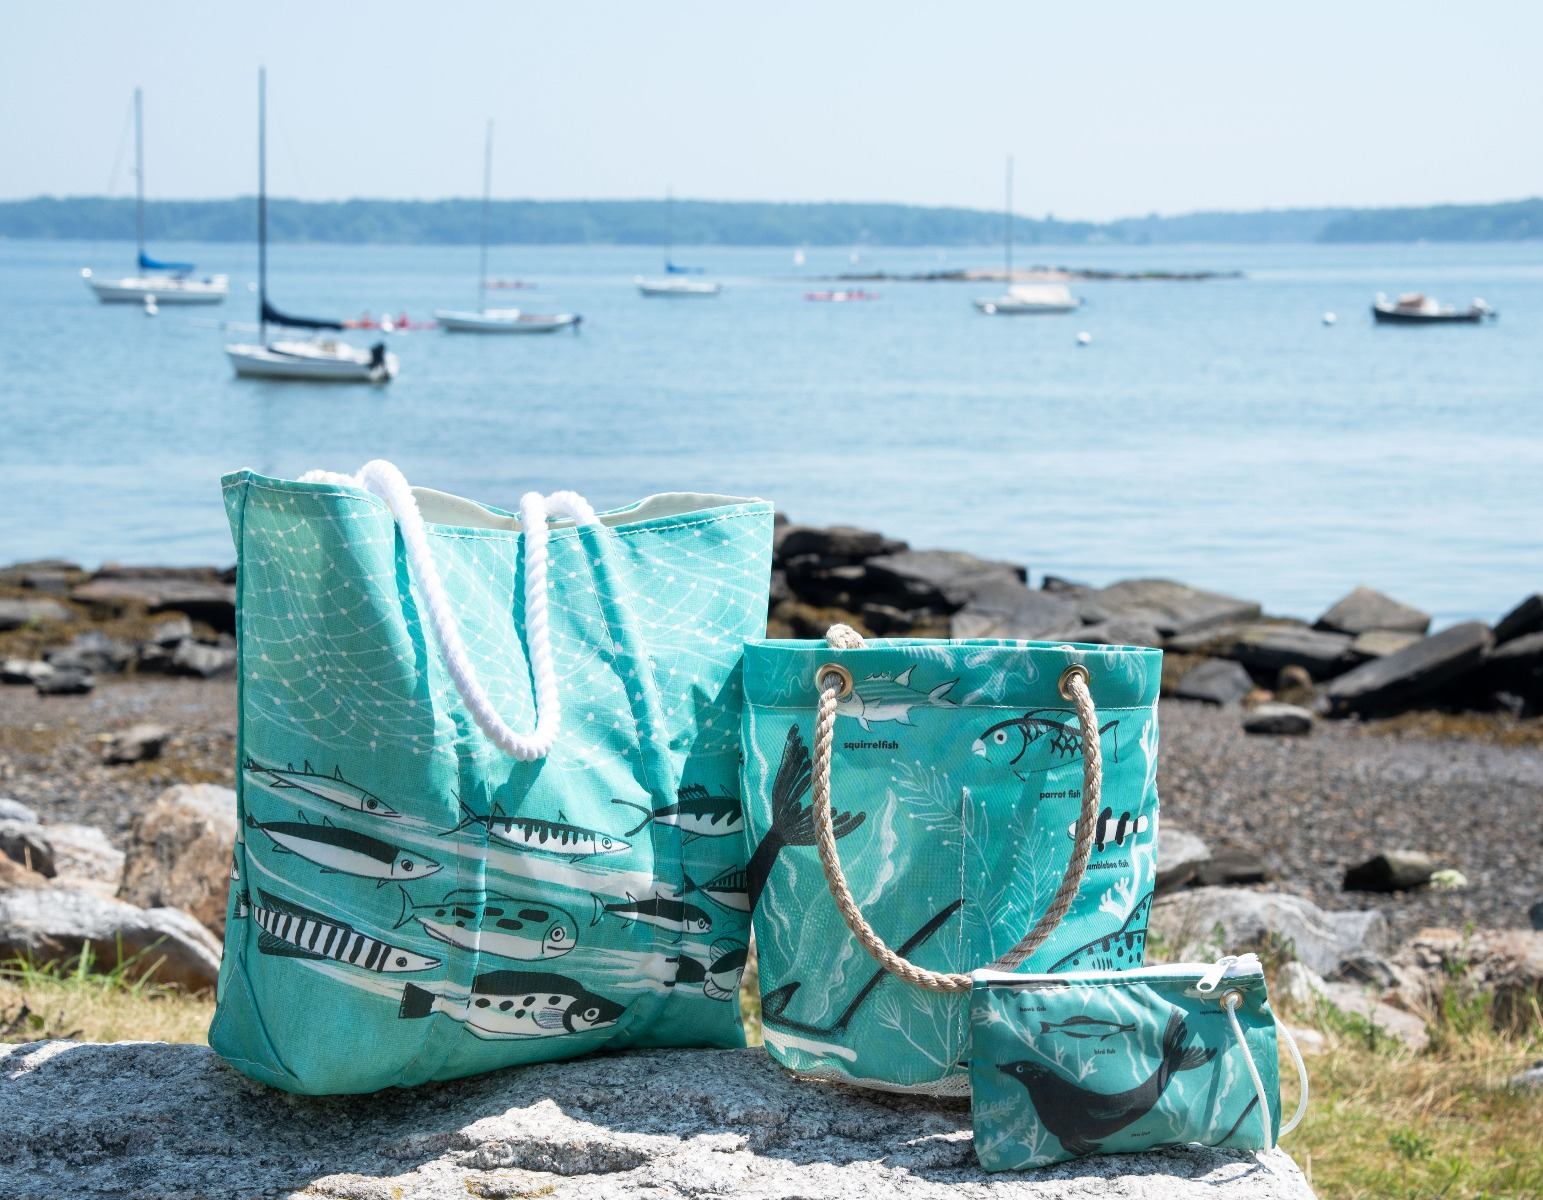 Sea Bags' recycled sail cloth totes and accessories featuring Dahlov Ipcar's illustrations